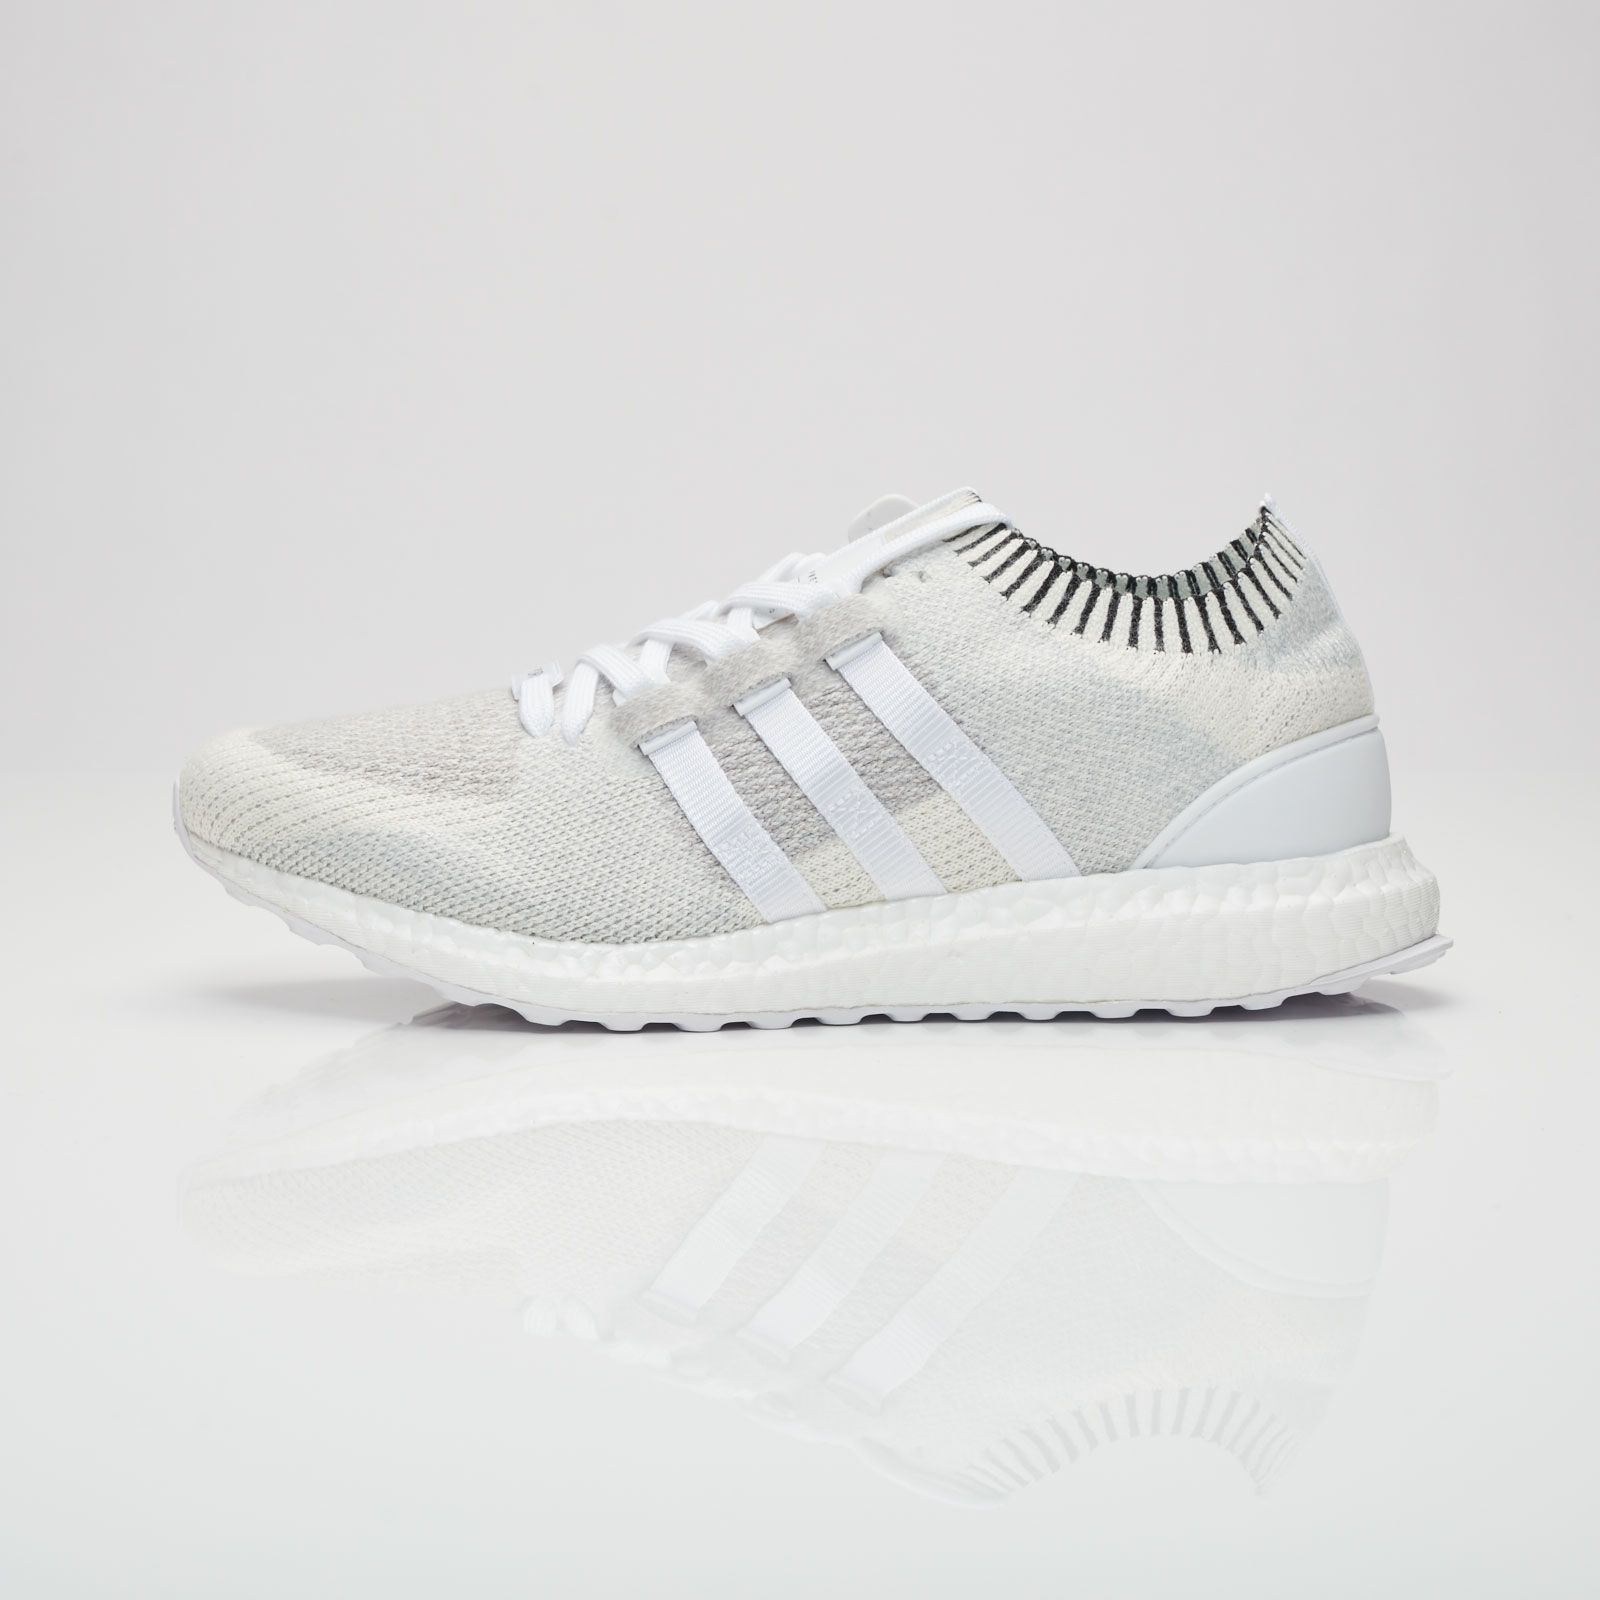 cheap sale high quality cheap lowest price Adidas Adidas Originals EQT Support Ultra sneakers free shipping sast outlet amazon buy cheap tumblr Ezf0lKNb